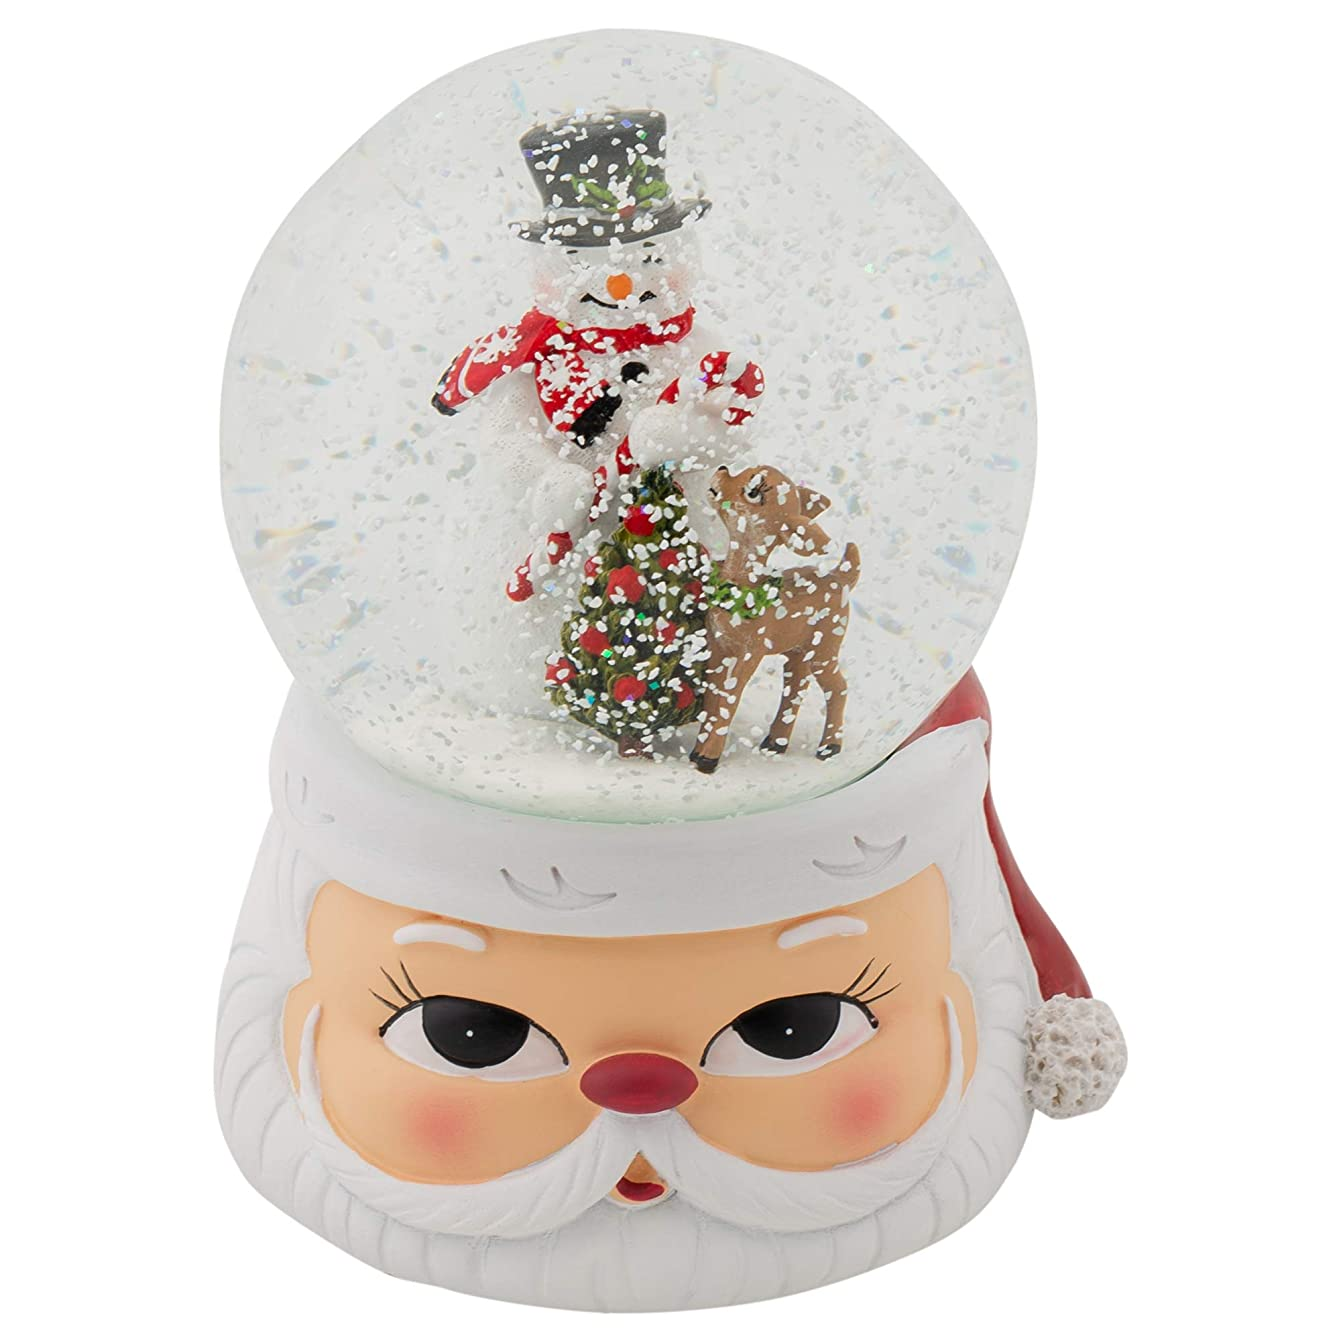 Snowman and Reindeer 6 Inch Glitter Globe Playing The Tune We Wish You A Merry